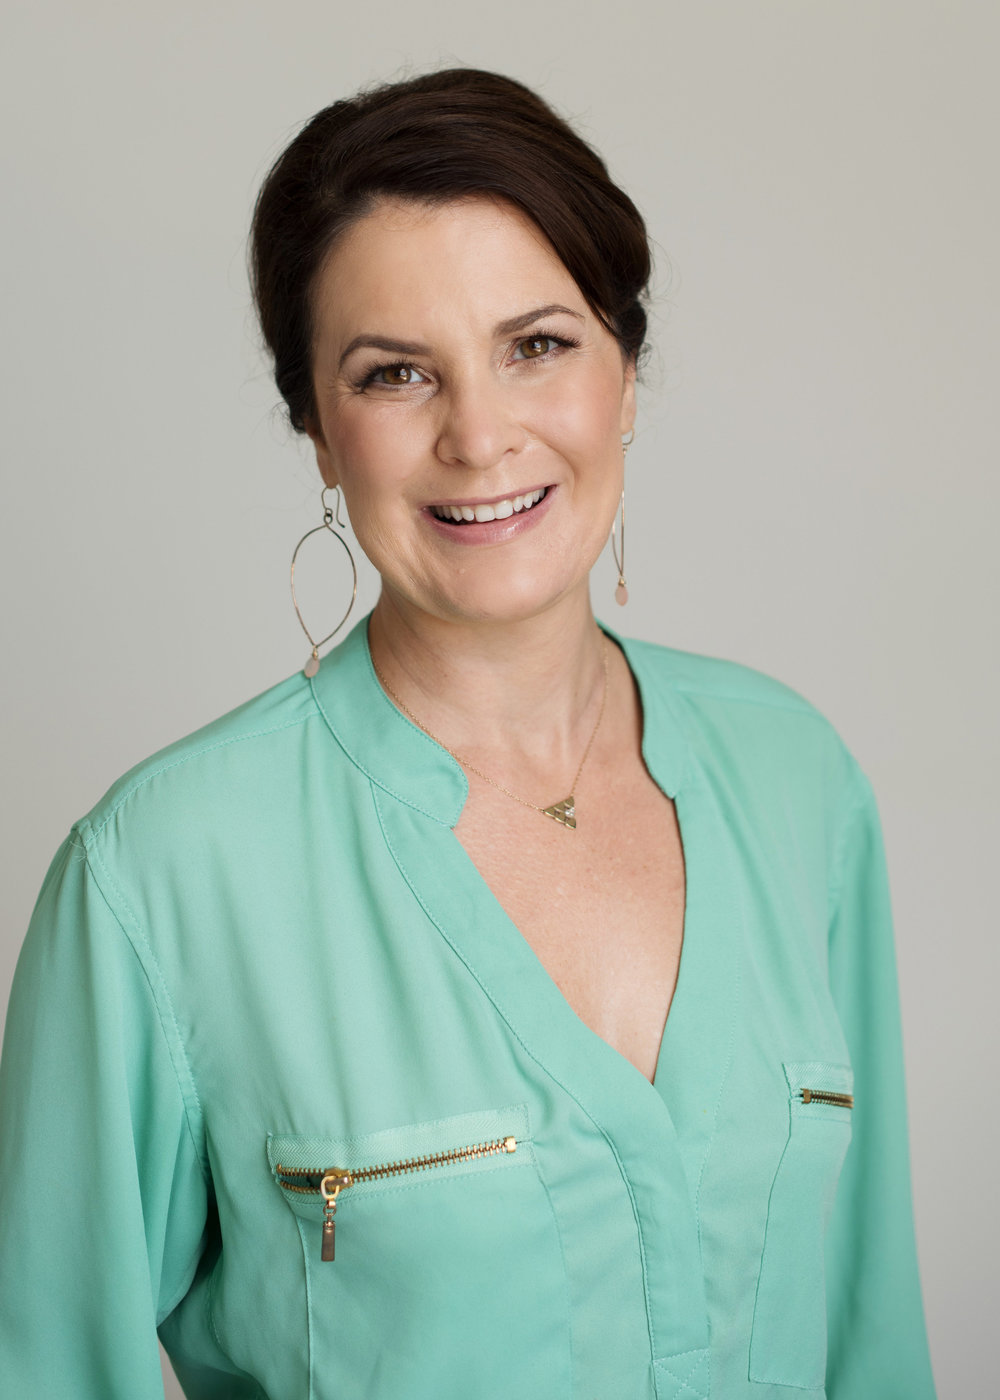 Kimberly Lackey is the founder of EMPATH Coaching. As a certified Integrative Health Coach and a certified teacher in the State of Florida, he works with individuals and families through coaching, nutritional counseling,teaching, motivational speaking and more to build healthier, happier lifestyles. Ms. Lackey may be contacted at Kimberly@EmpathCoaching.com. -